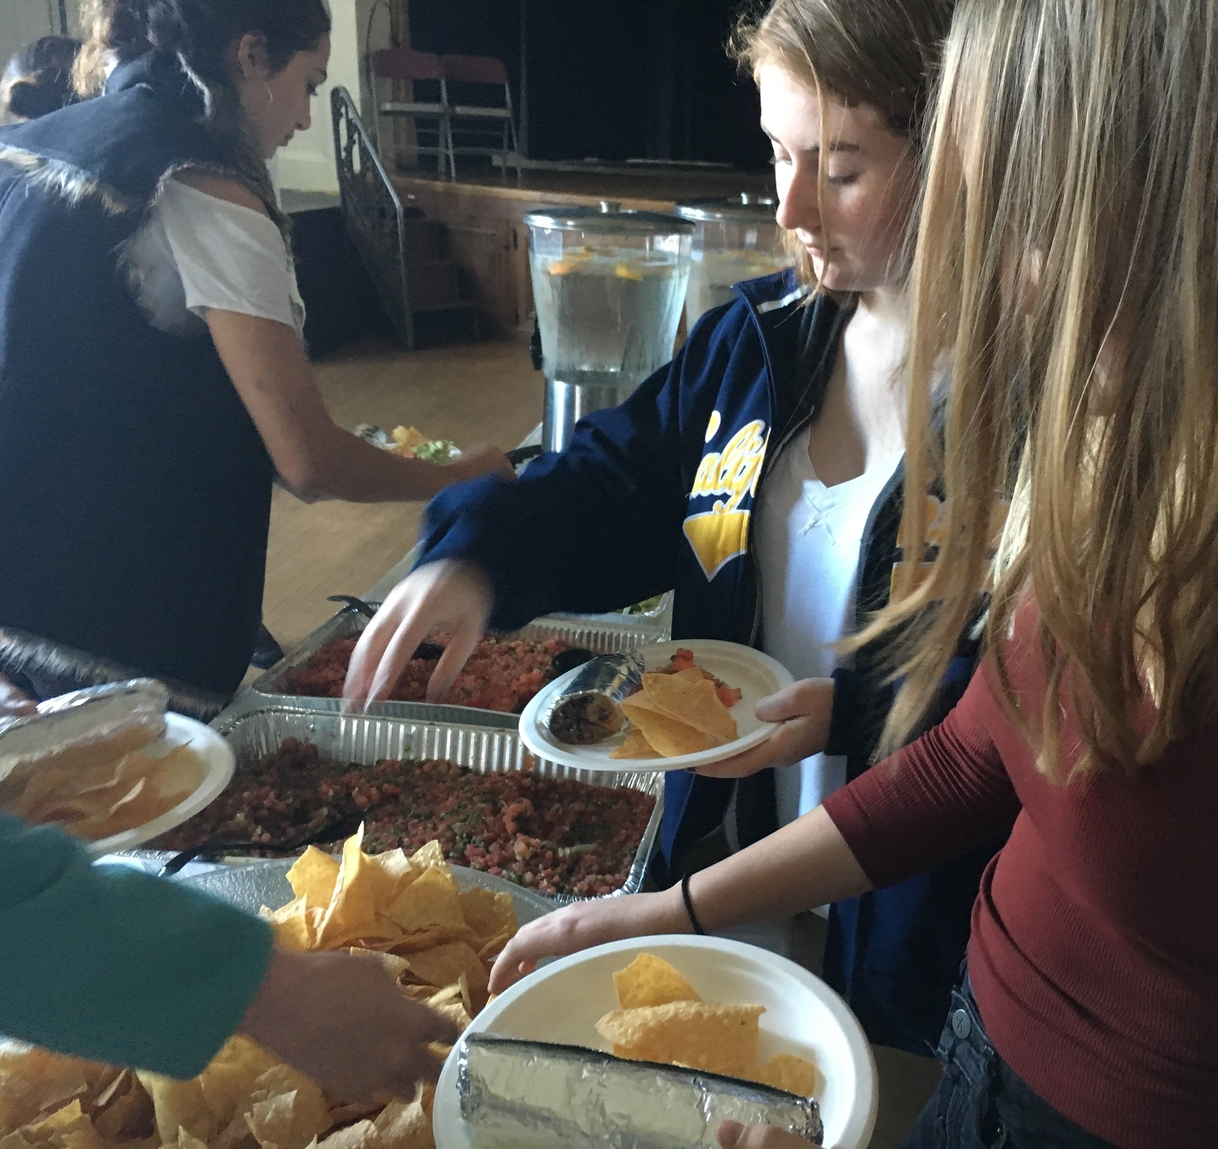 Sophomores Abby Anderson, Sophie Egan and Sofia Pirri help themselves to burritos, chips and salsa before today's meeting. The meeting went through lunch, and sophomores were invited to ask any questions they had about their upcoming trip.